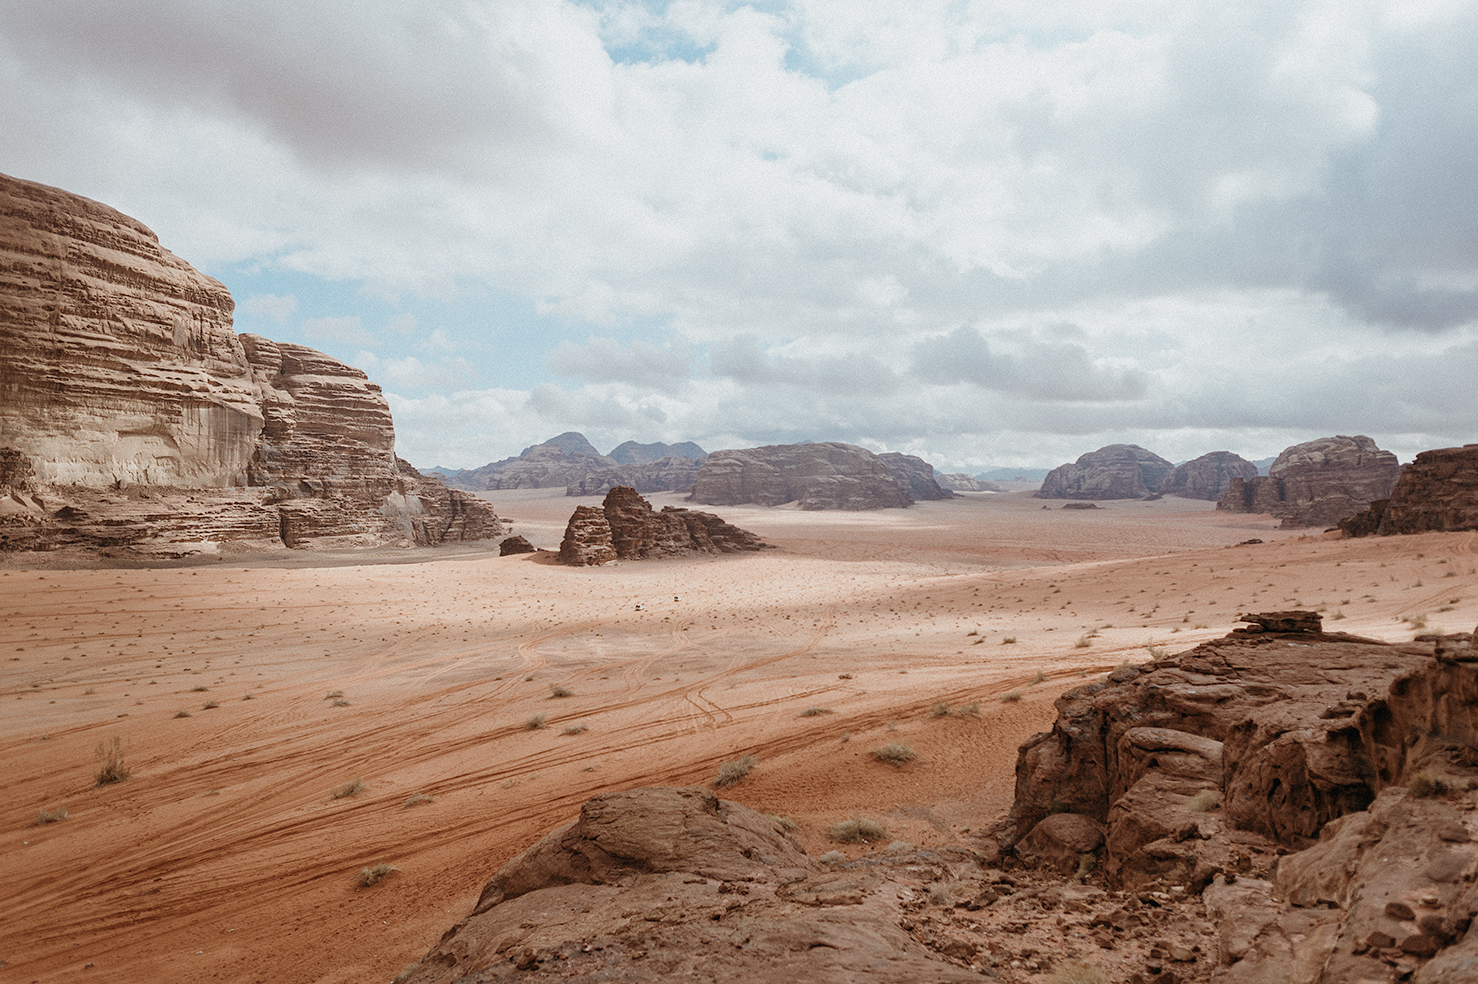 20181125_WADI-RUM-3-and-PETRA_173.jpg